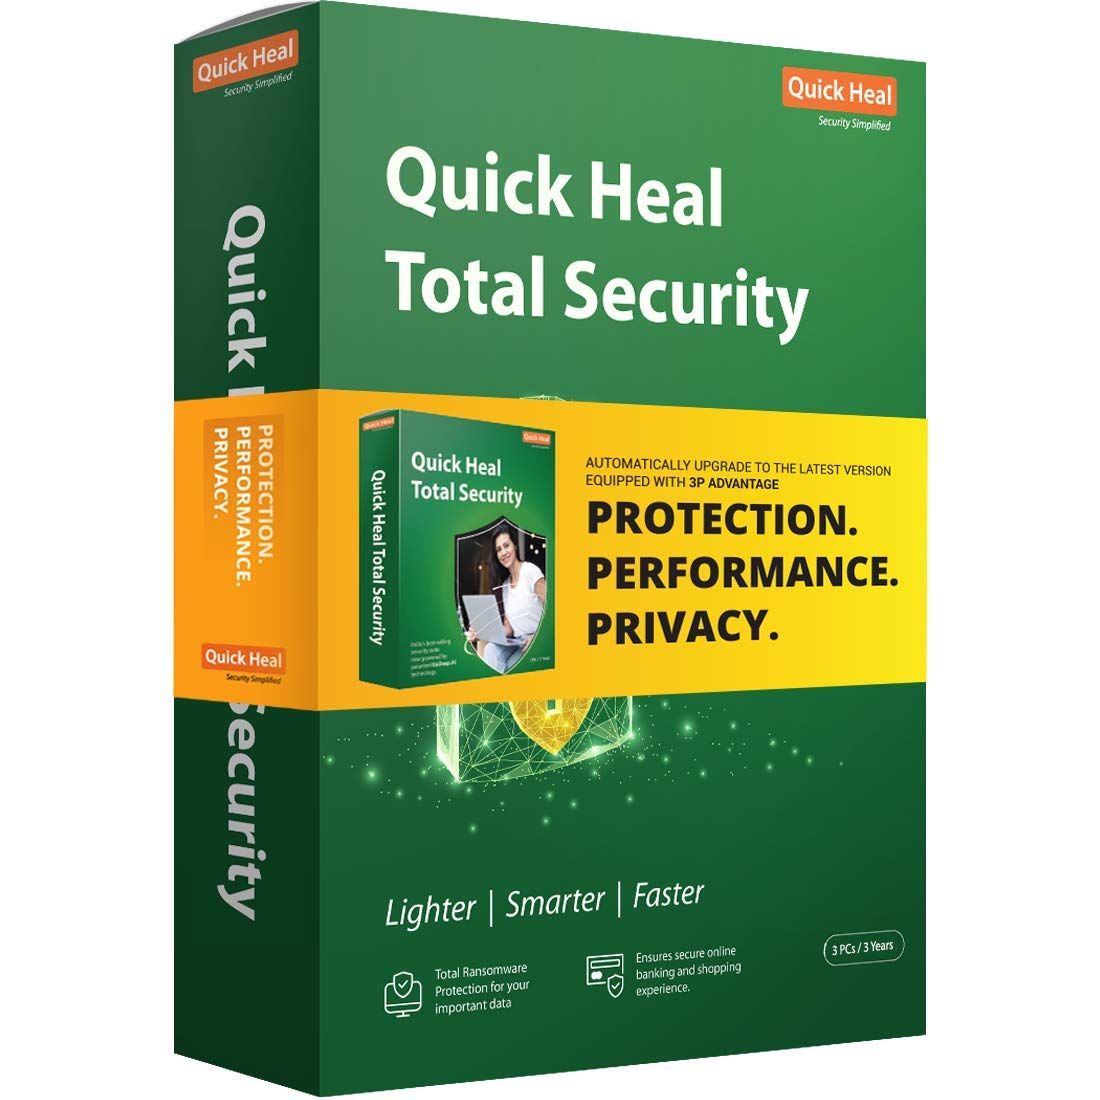 Quick Heal Total Security For Identity Protection, Internet Security, Secure Online Banking And Robust Protection For Your PC. 3PC/3YEAR